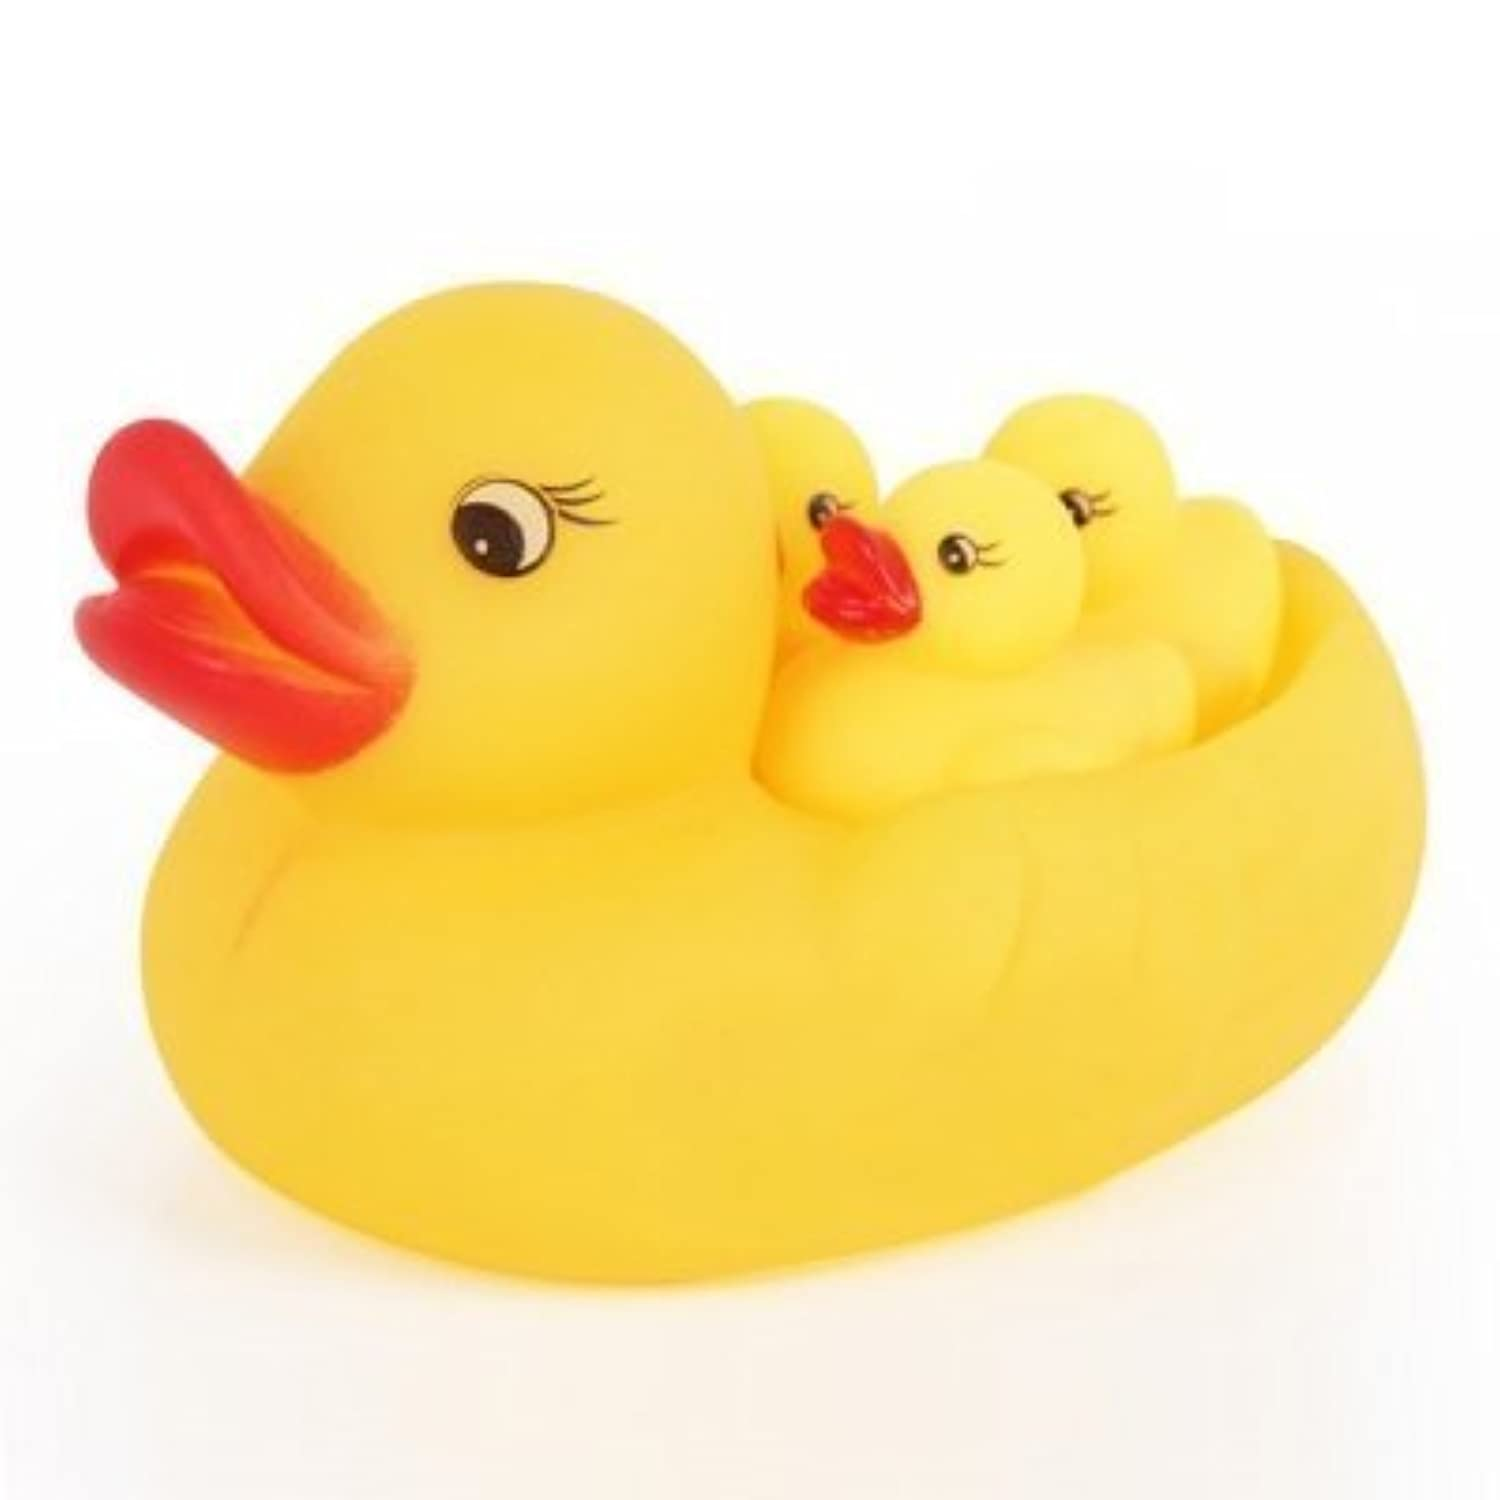 Mummy And Baby Rubber Race Cute Ducks Family Squeaky Bath Toys For Kids Set Ducks by BST [並行輸入品]